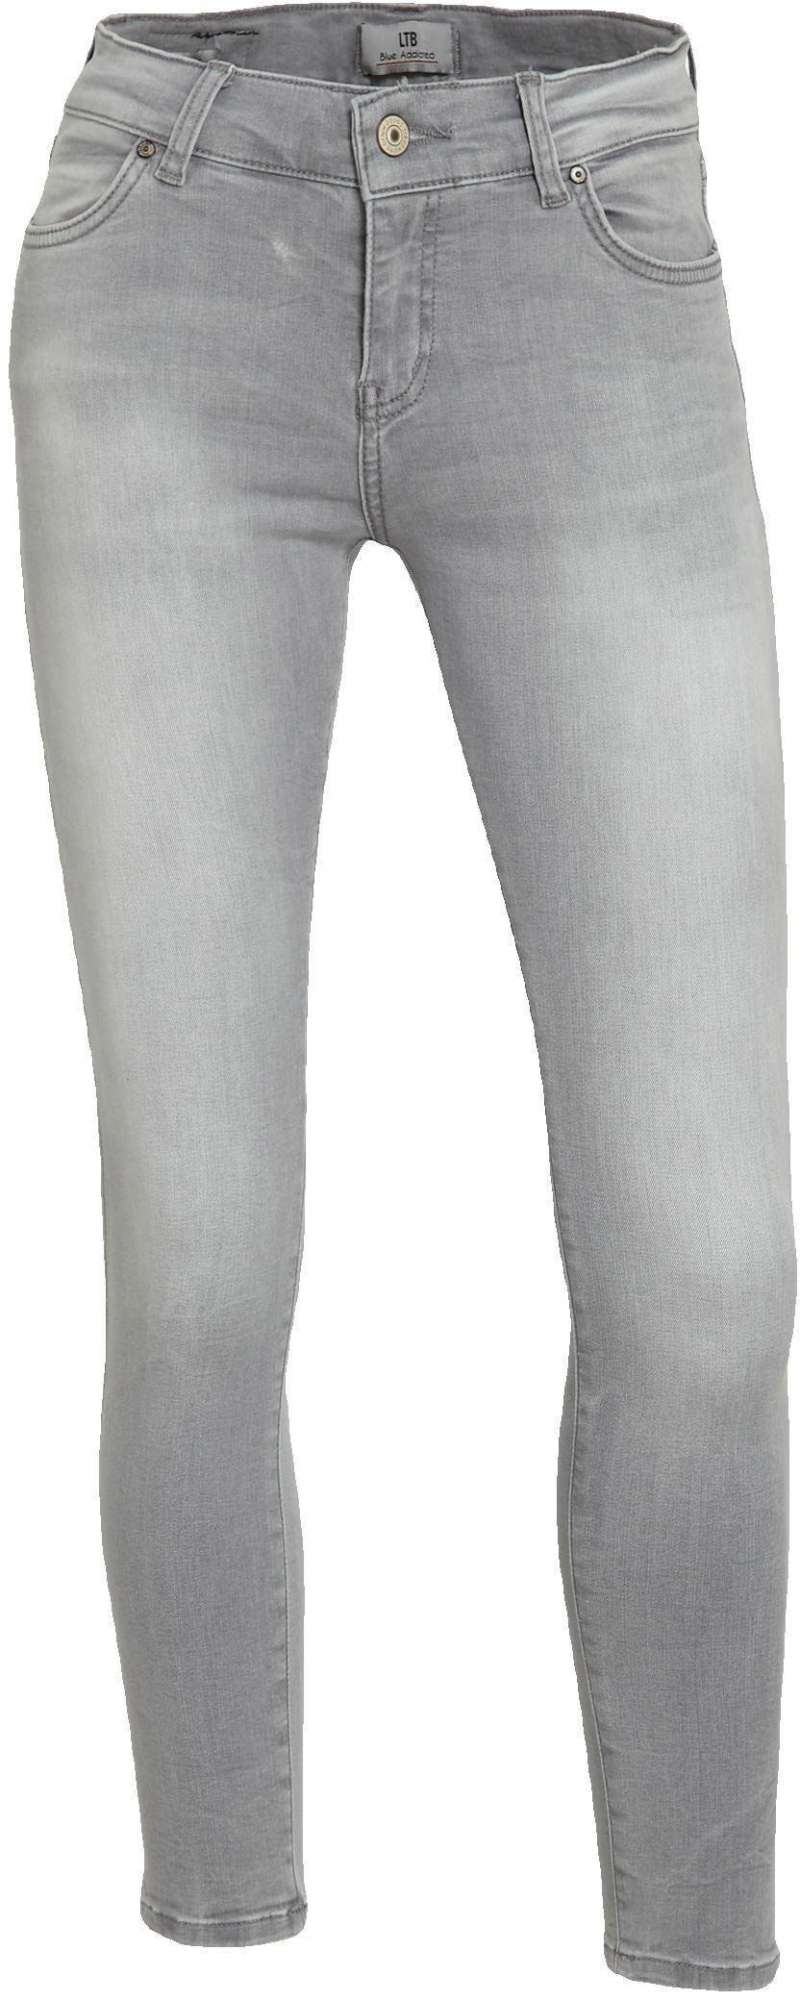 Lonia freya undamaged grey wash